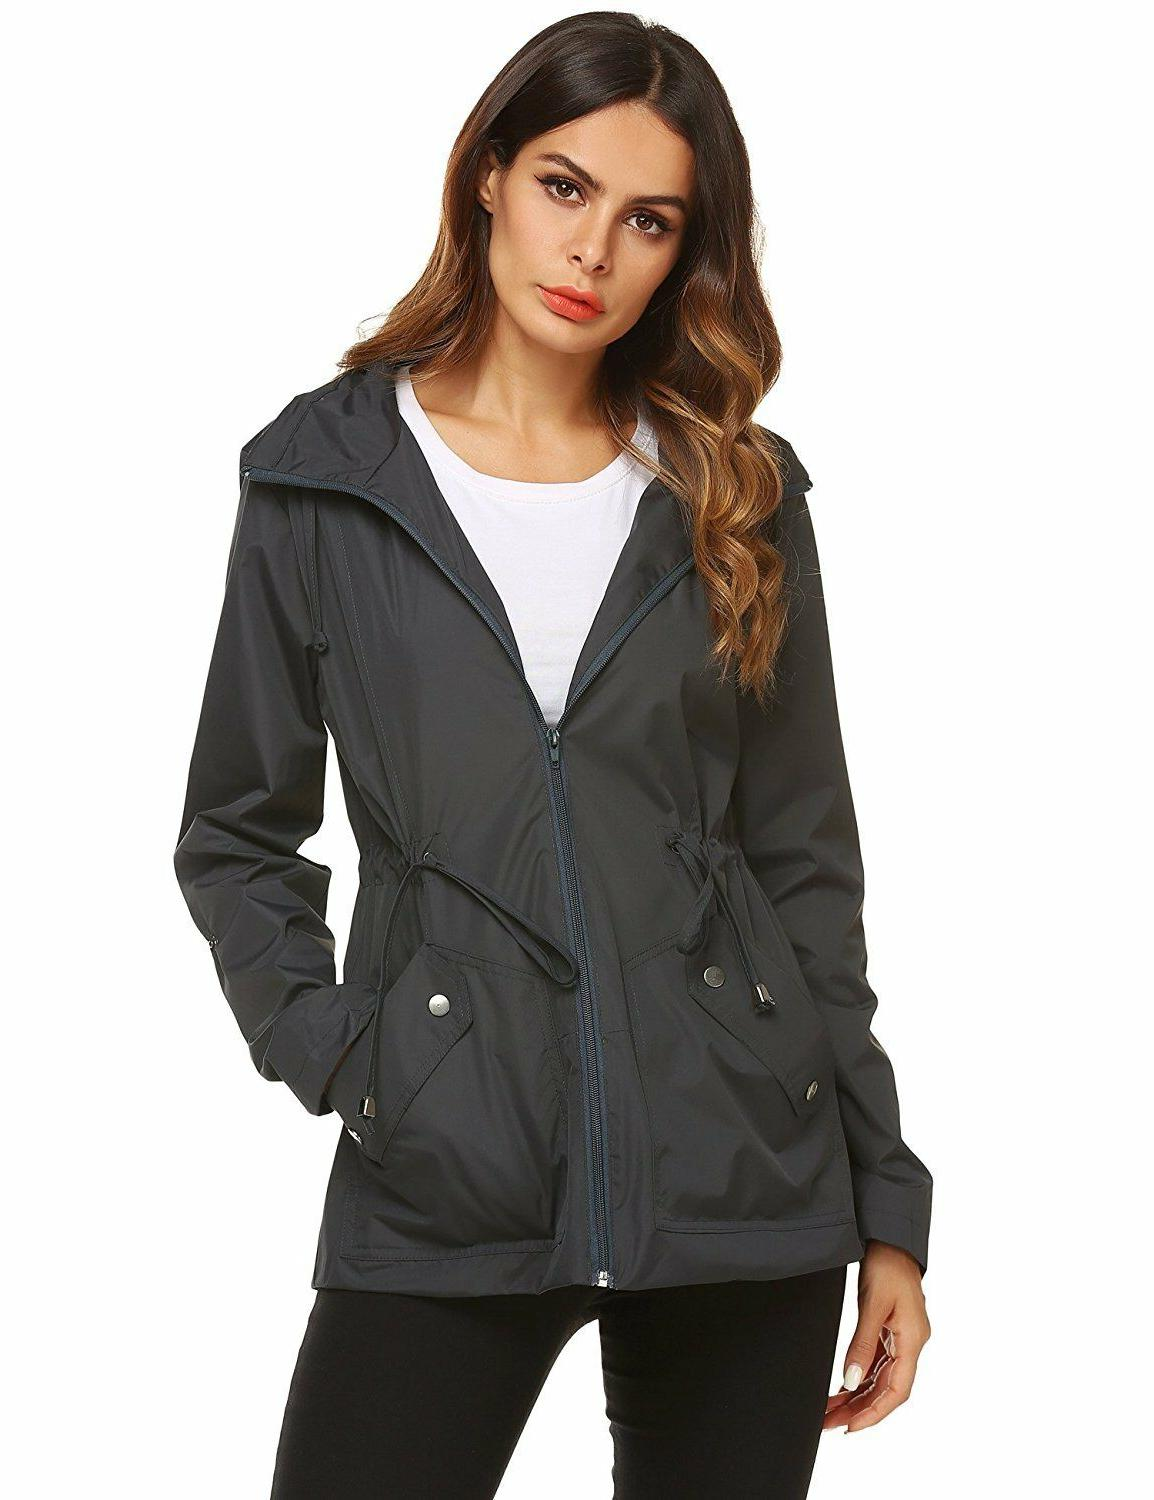 zhenwei Jacket Waterproof Hood Outdoor Active